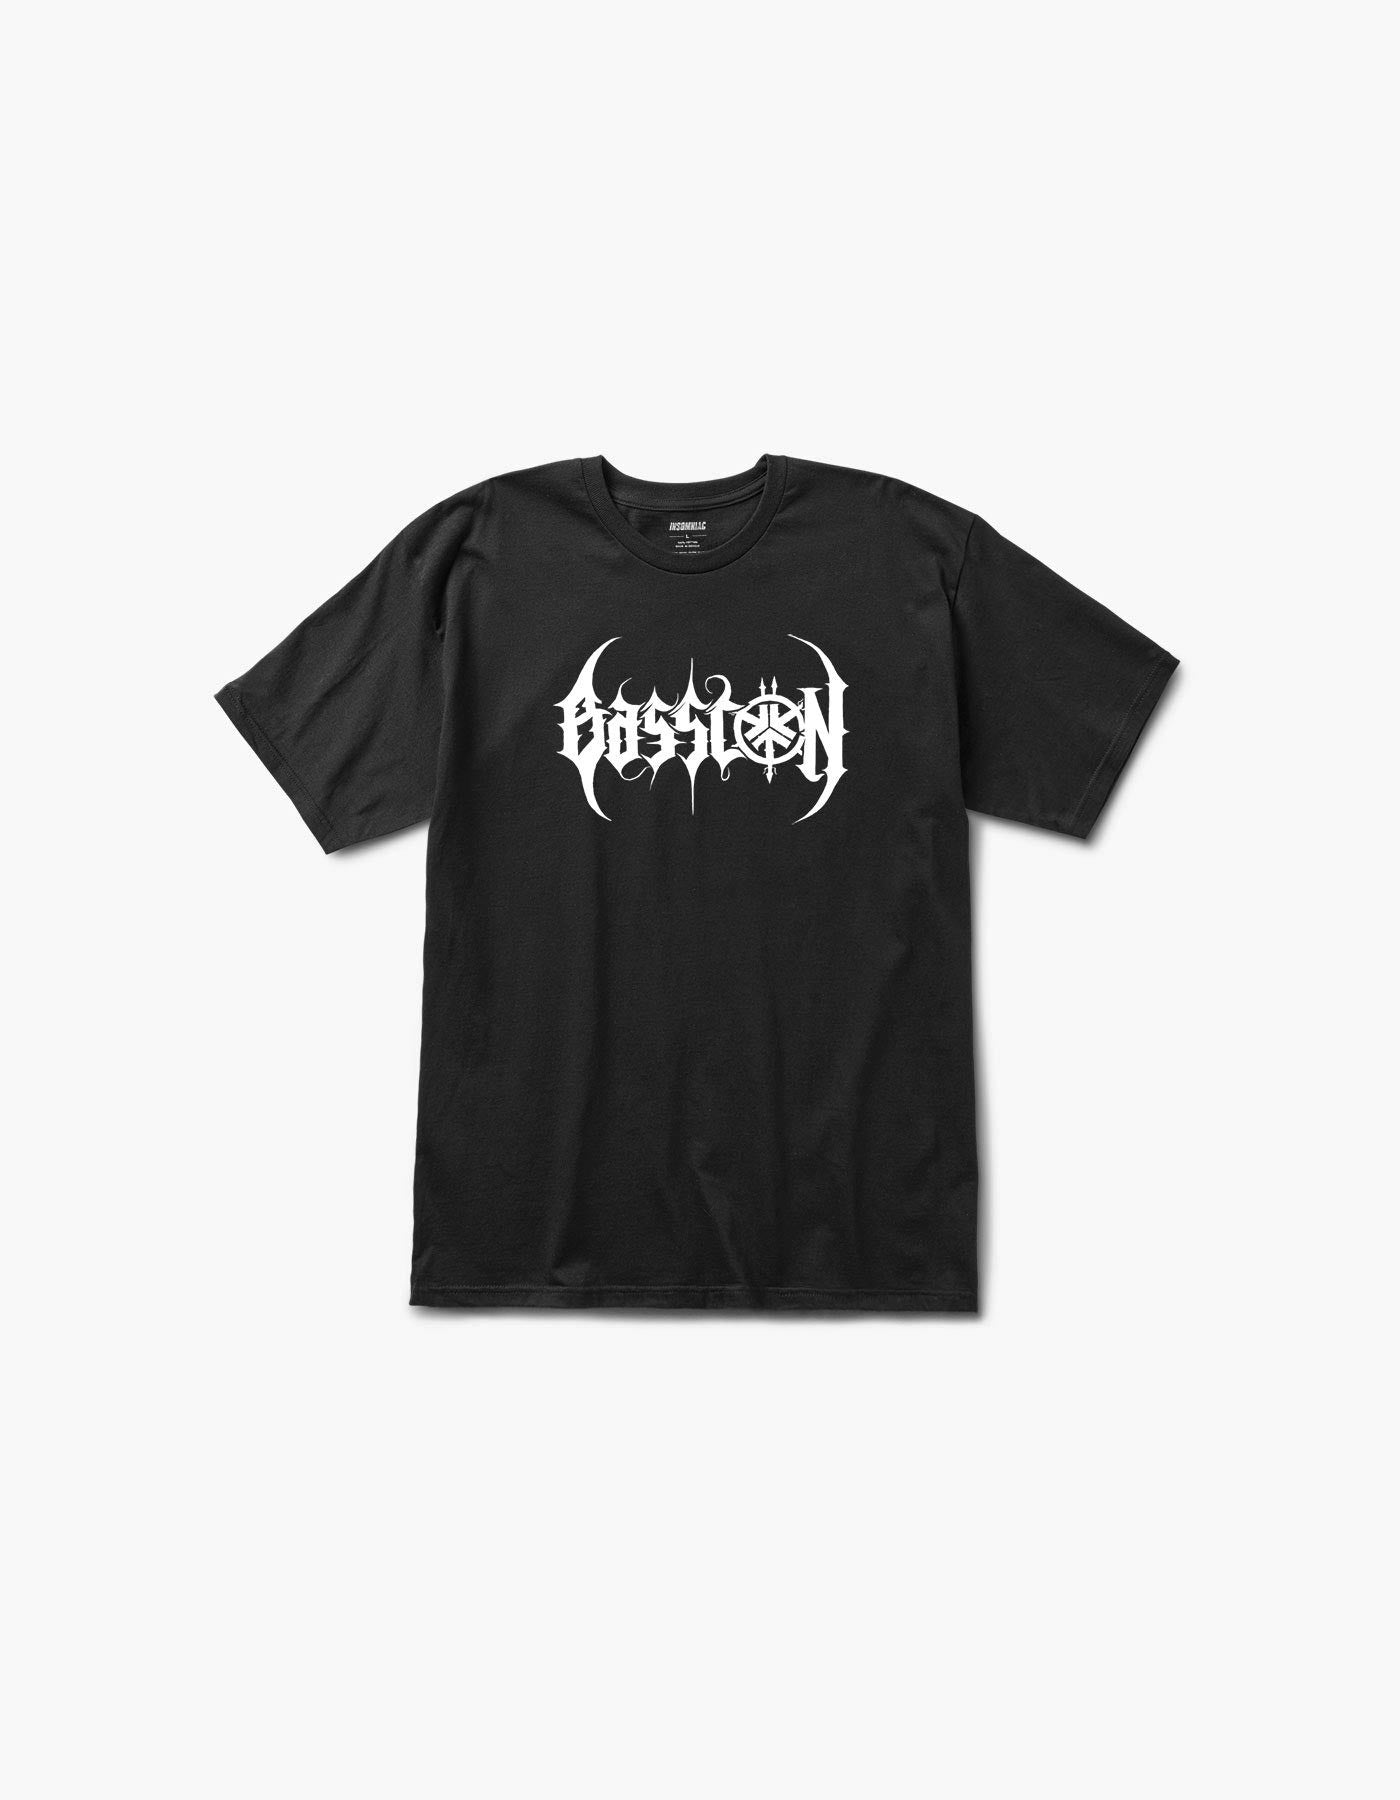 Basscon Brutal Shirt